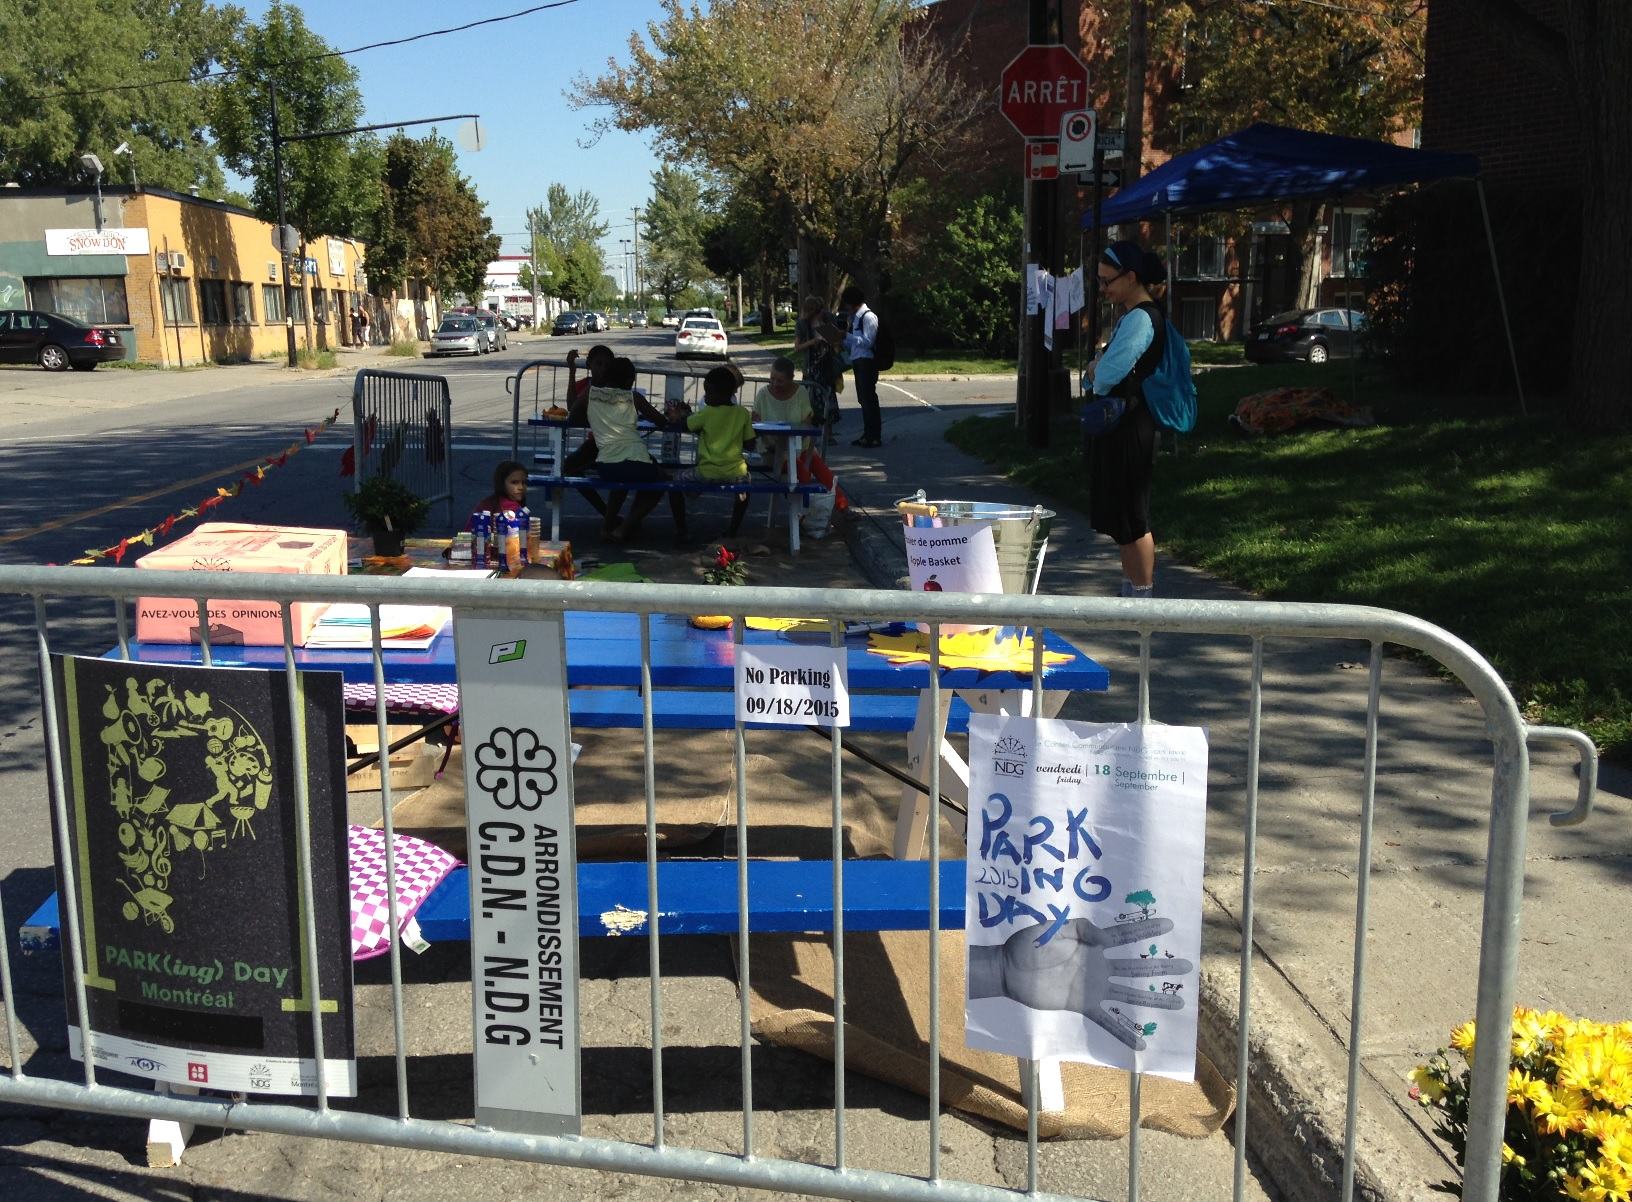 Westhaven Parking Day 2015 pic 1